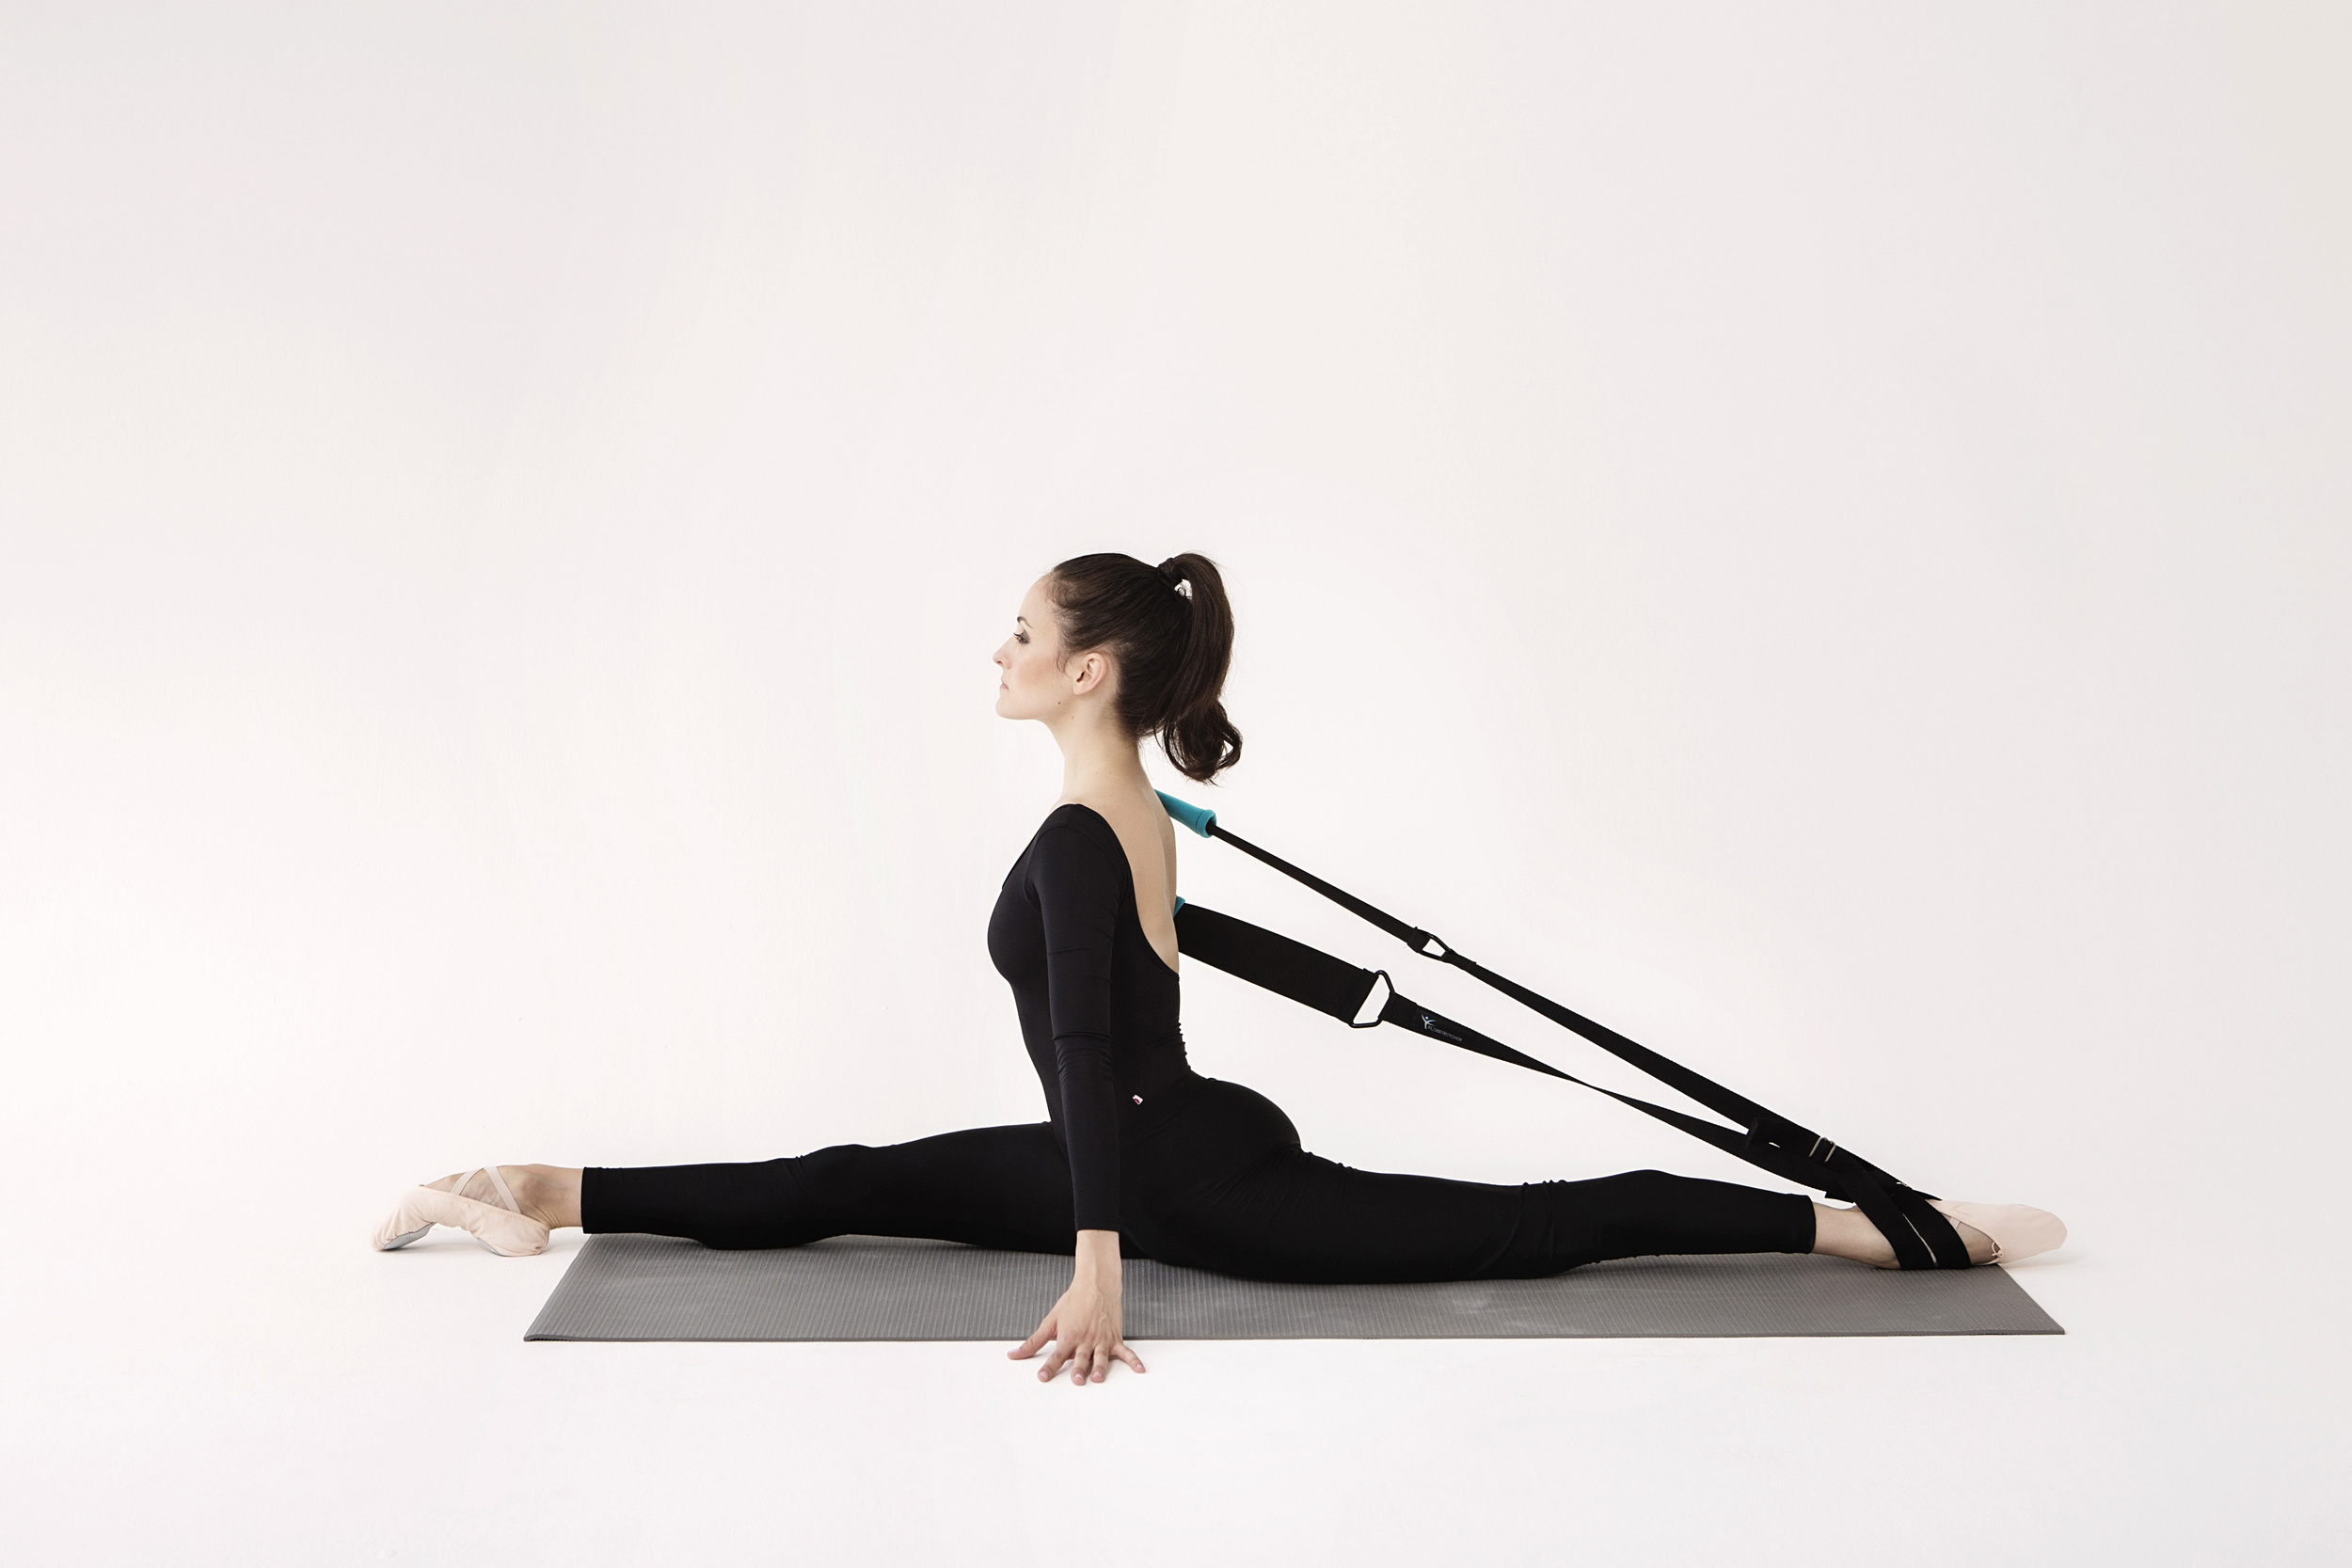 Front Split with the Flexistretcher demonstrated by Melanie Hamrick of ABT.